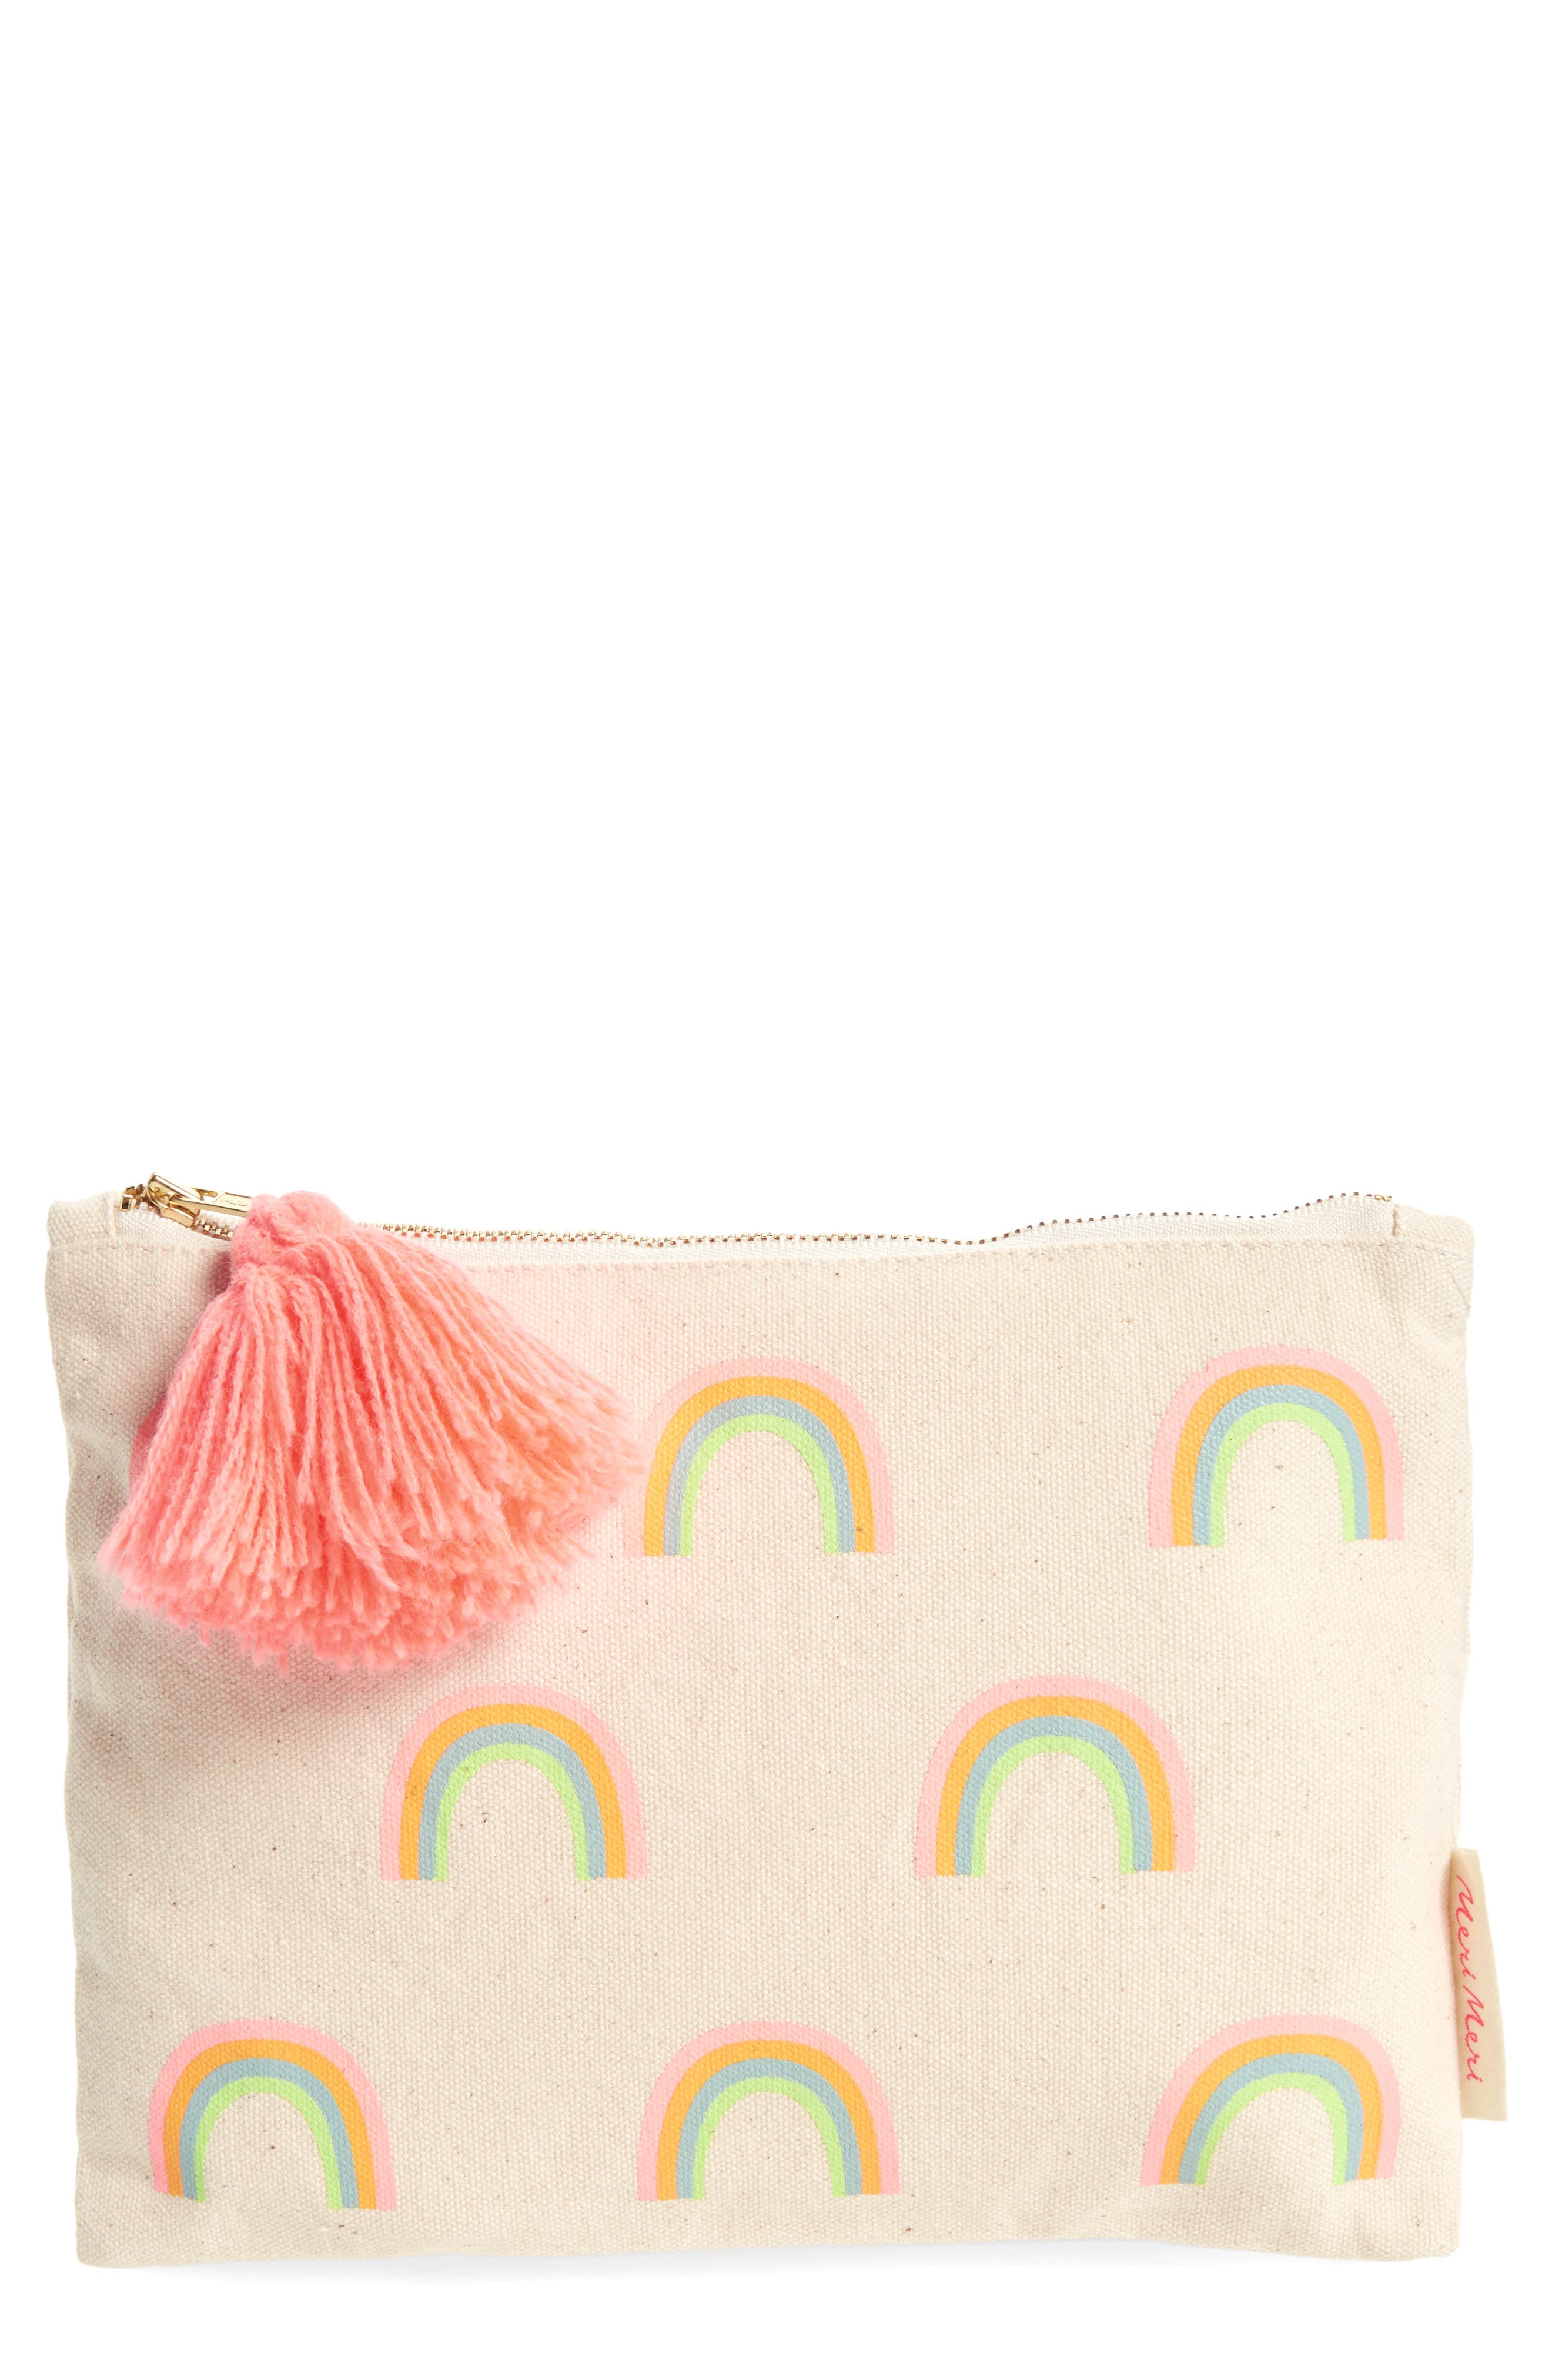 Large Rainbow Zip Pouch,                             Main thumbnail 1, color,                             Cream Multi